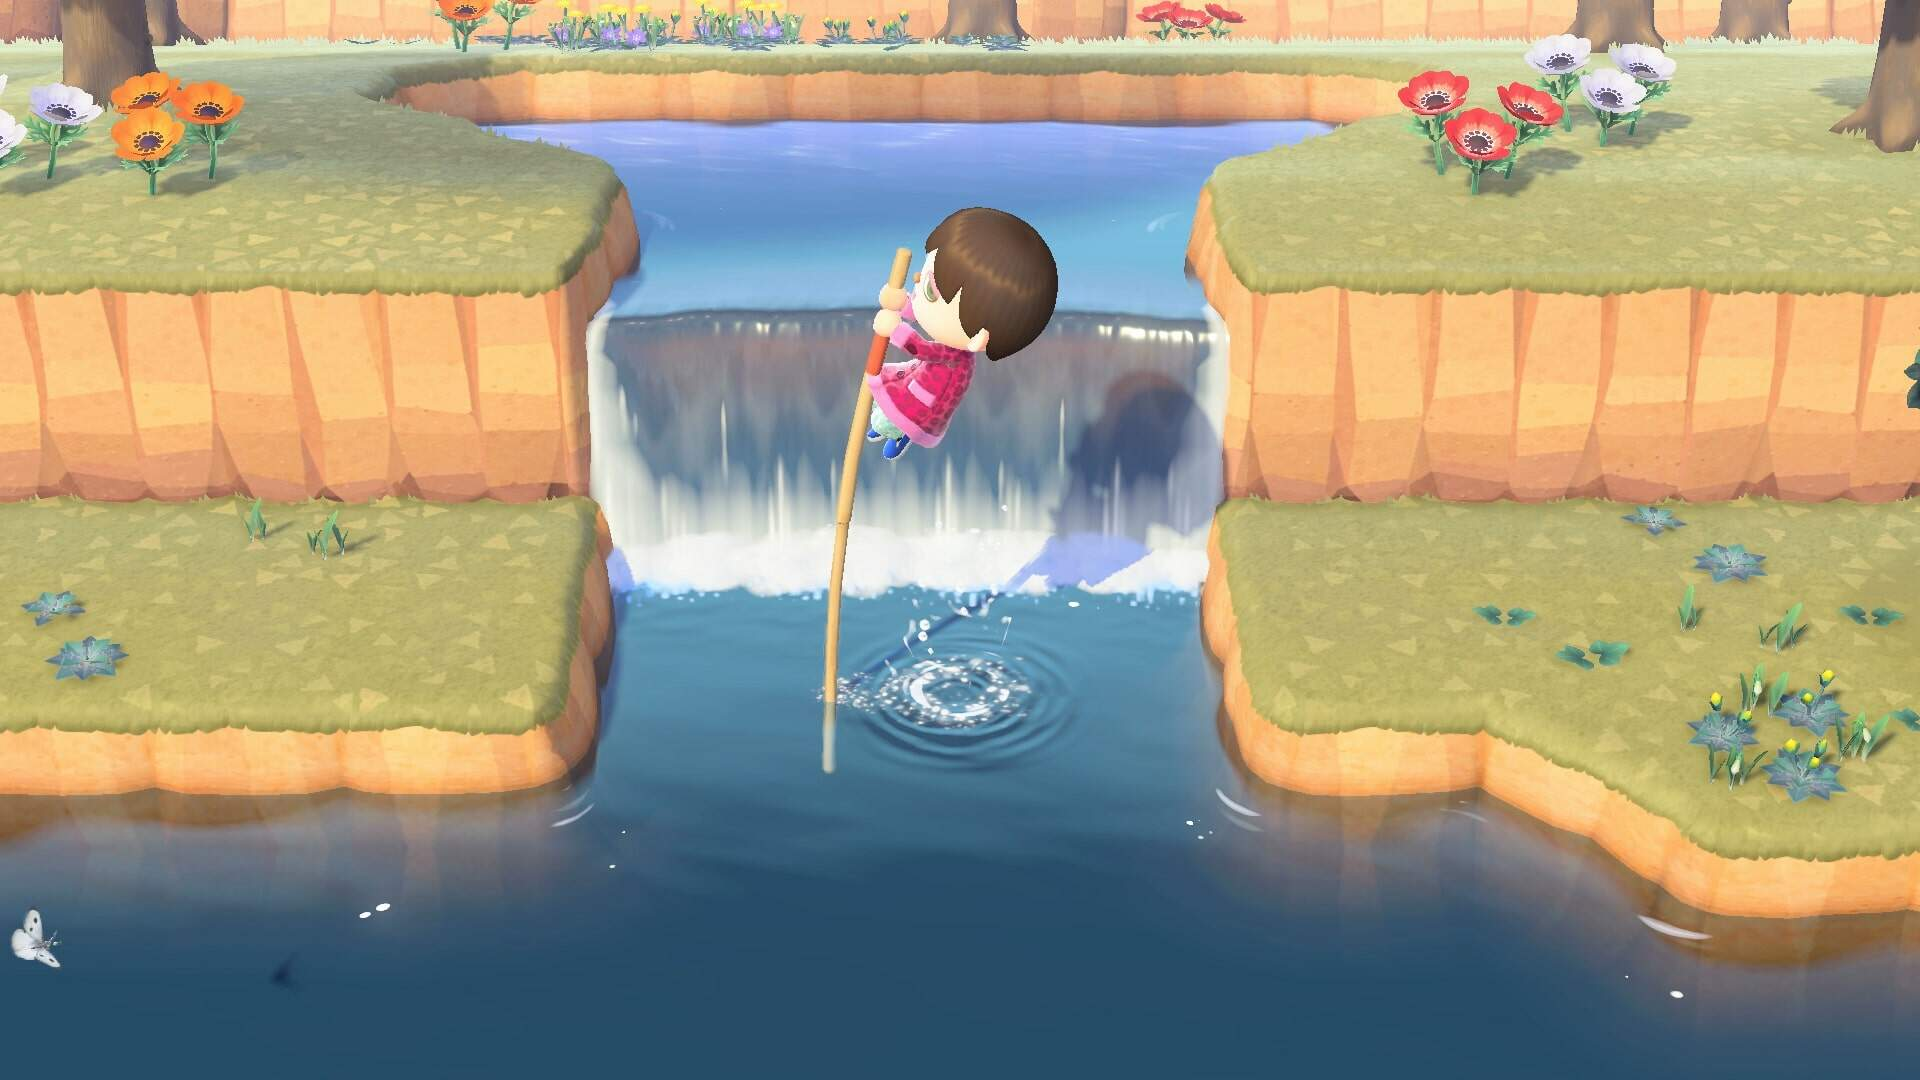 Animal Crossing New Horizons: How to Get a Vaulting Pole